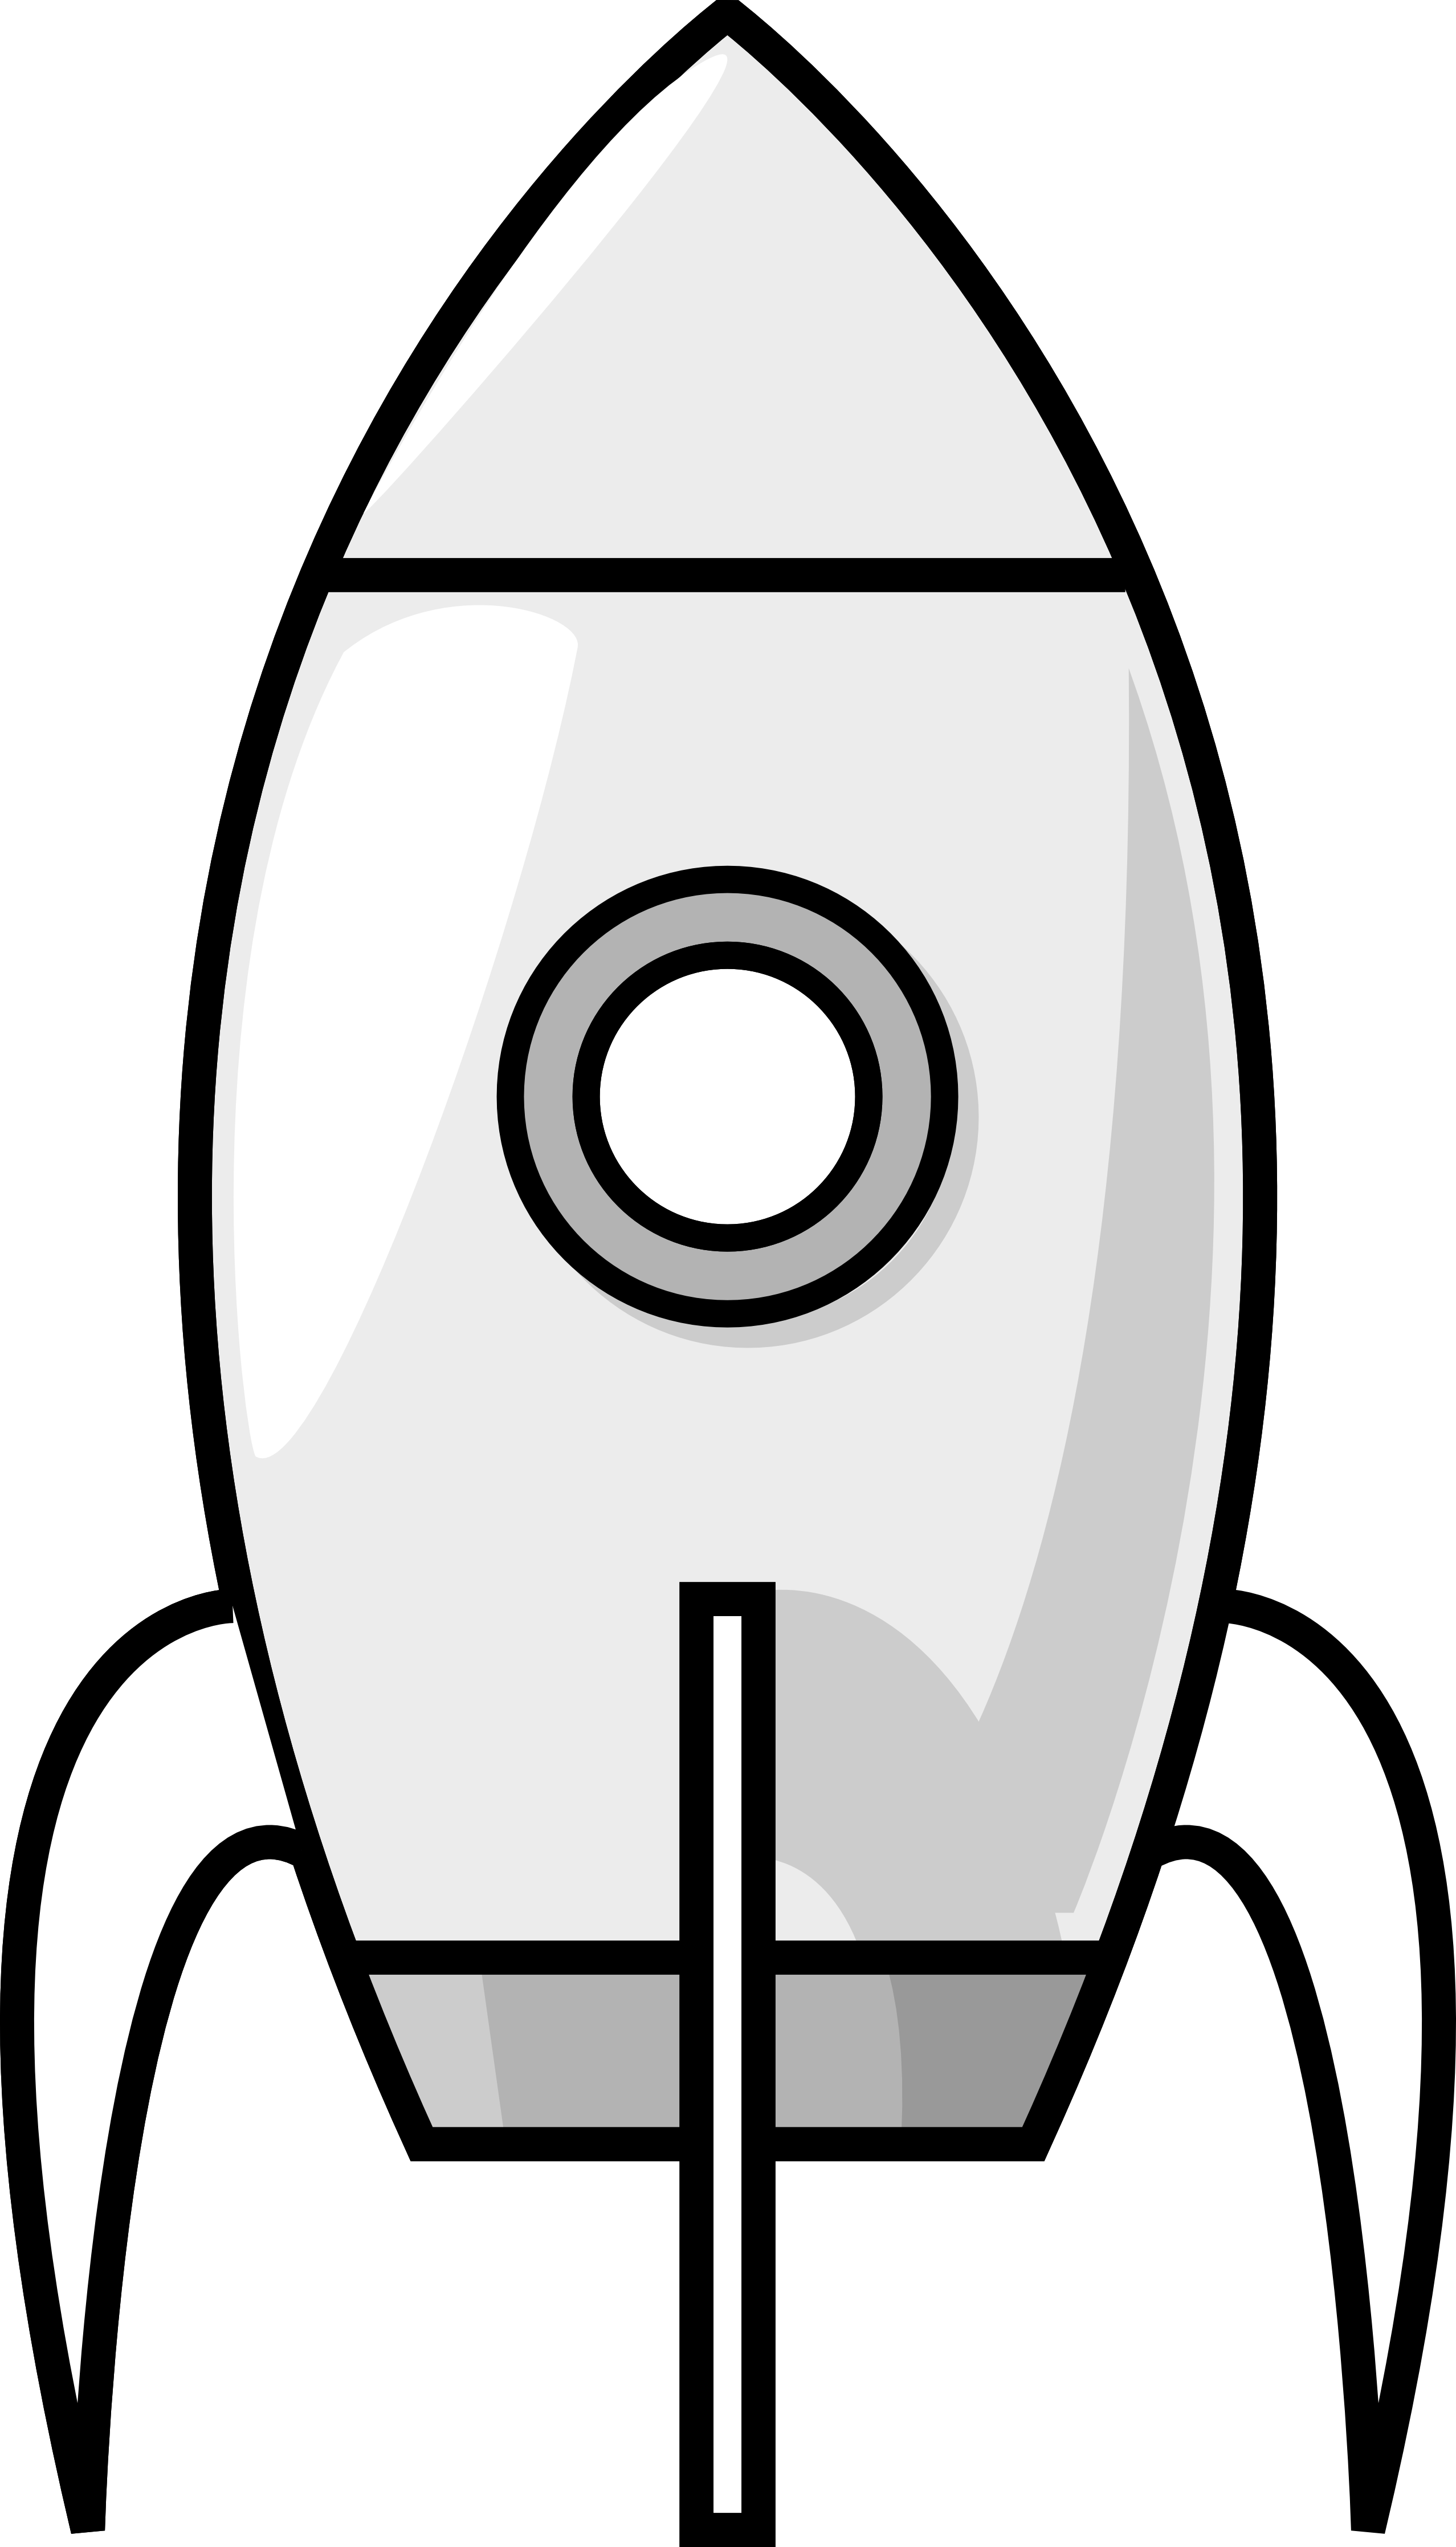 Rocket clipart black and. Spacecraft drawing futuristic spaceship png black and white